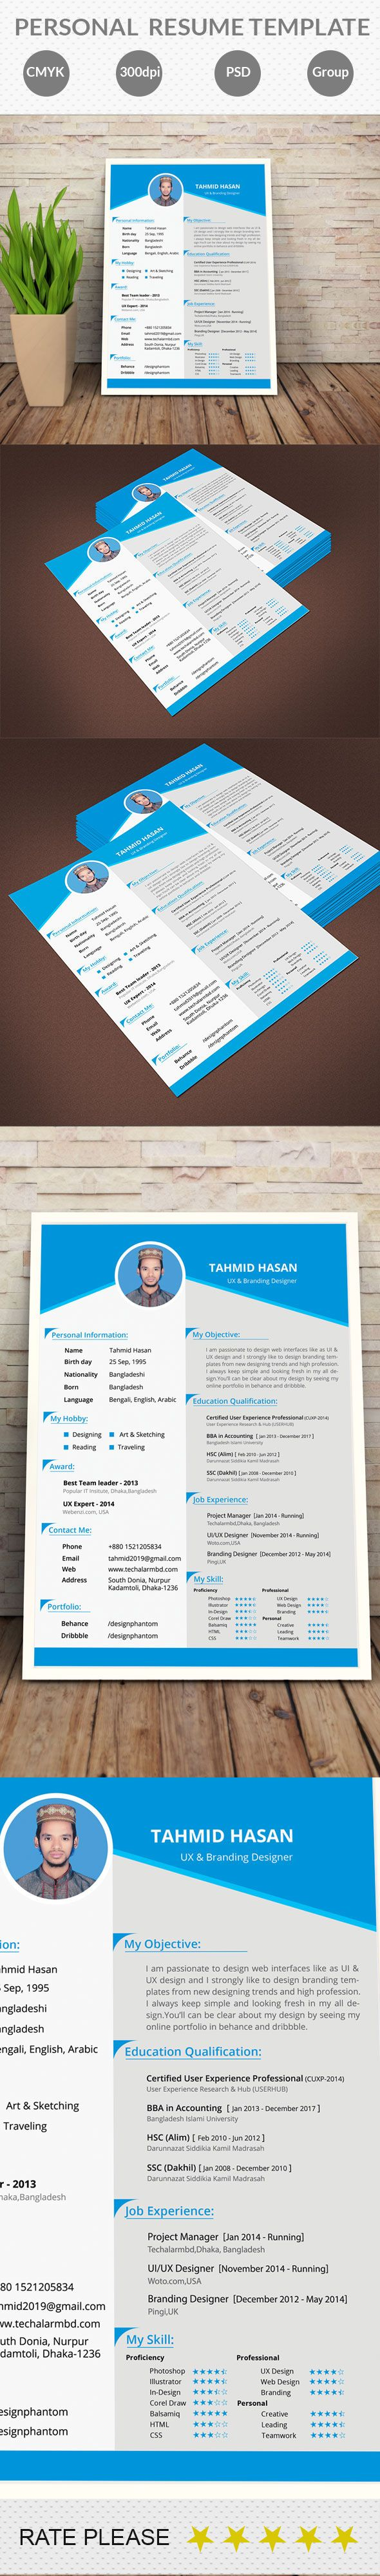 Free personal resume template for all of human being